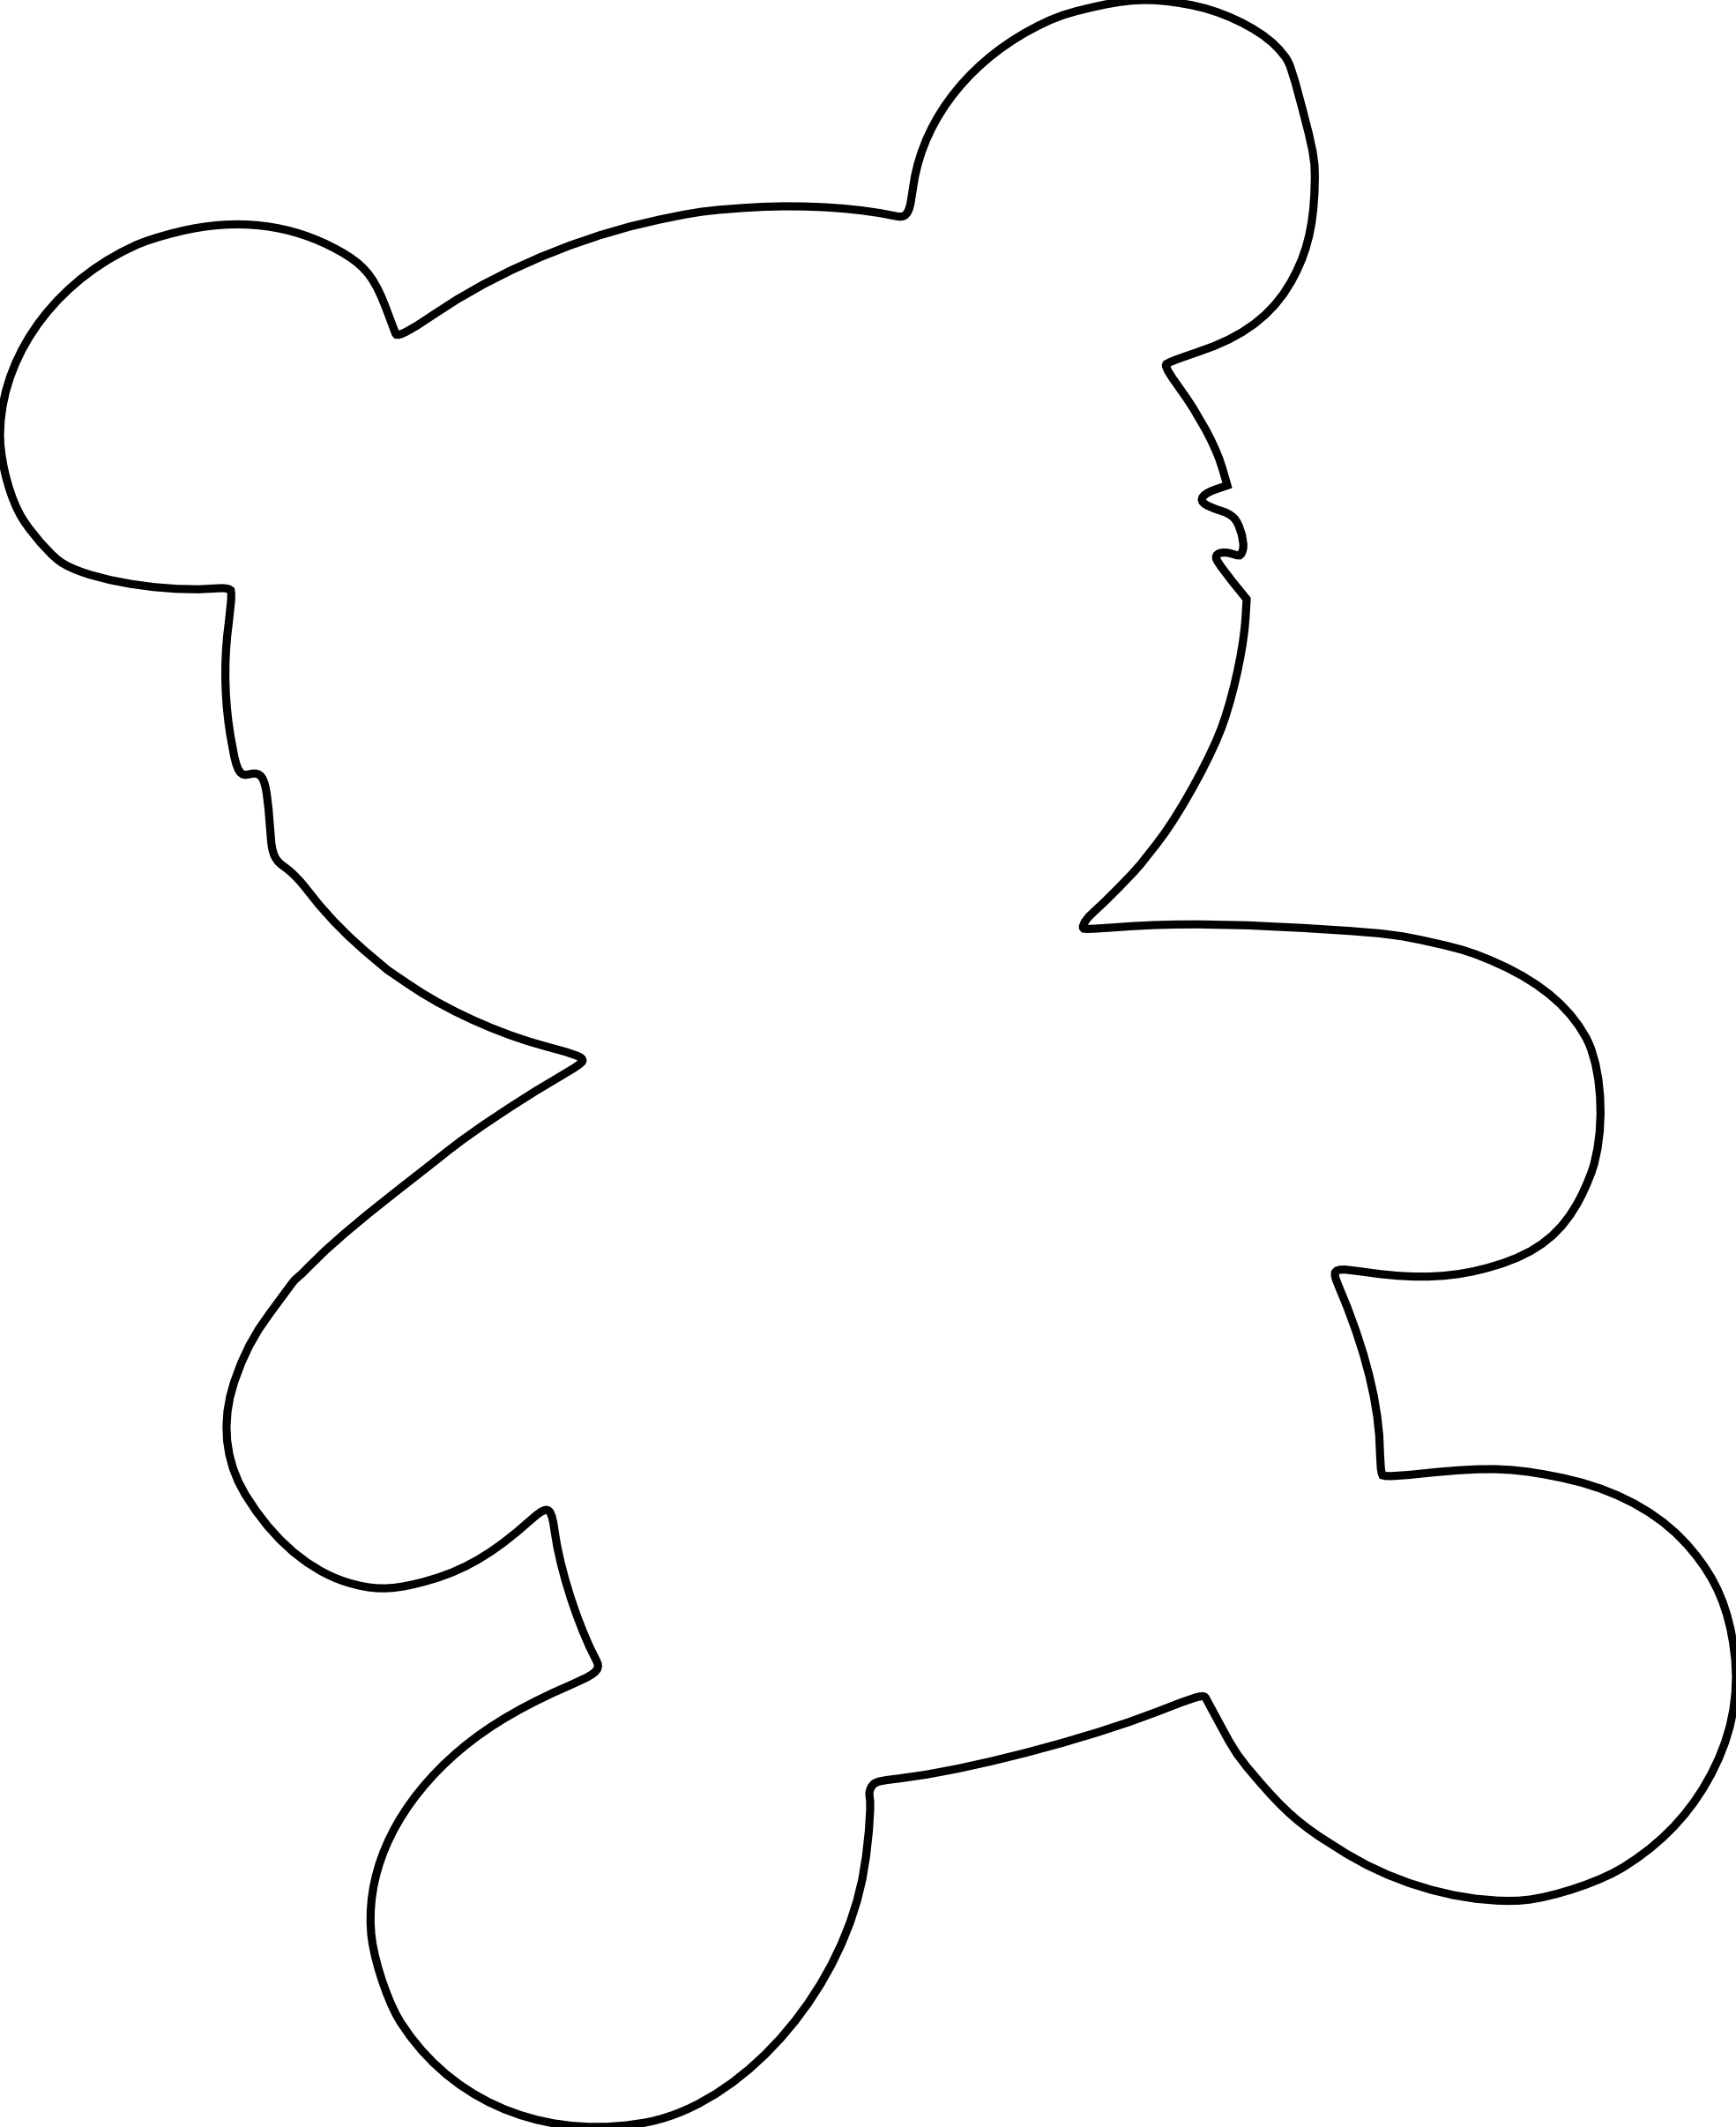 Coloring pages teddy bear printable - Teddy Bear Coloring Pages Free Free Printable Coloring Pages